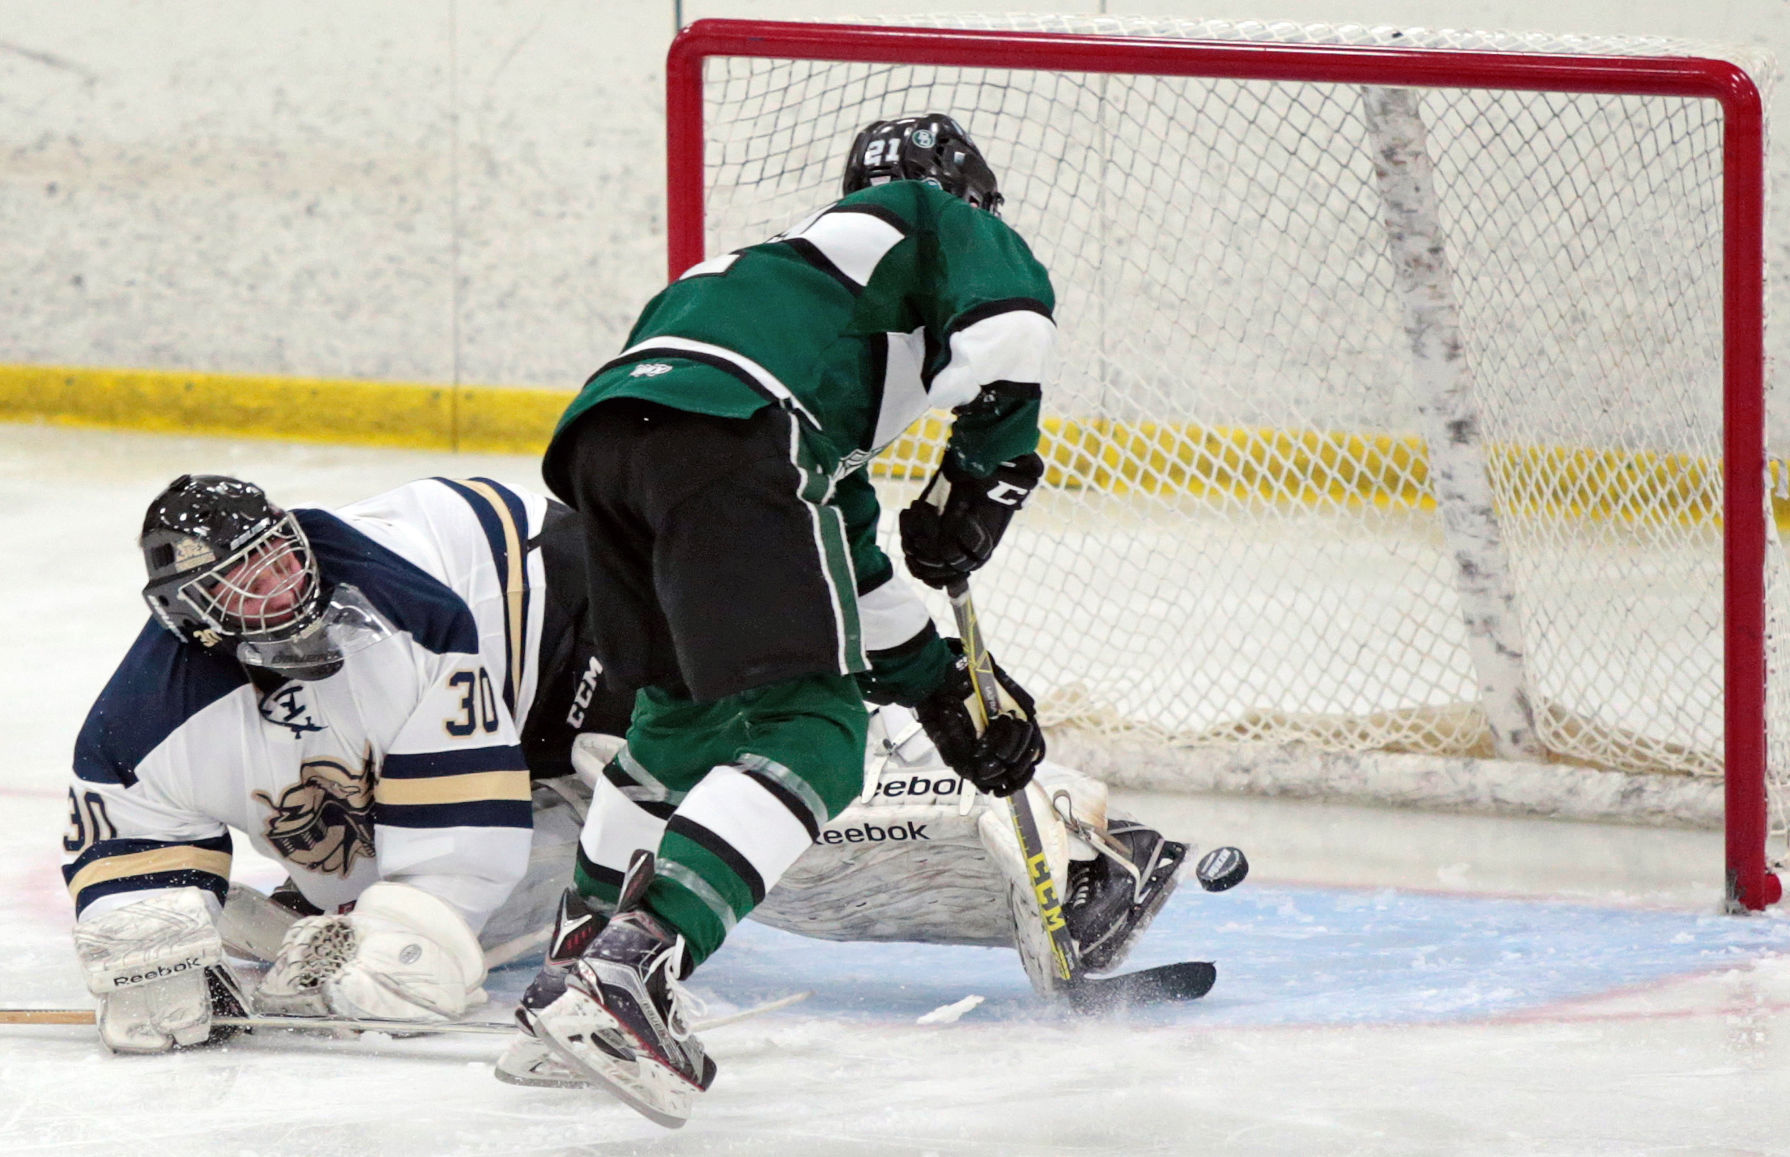 WI H.S.: Prep Pairings Set For Culver's Cup Later In December